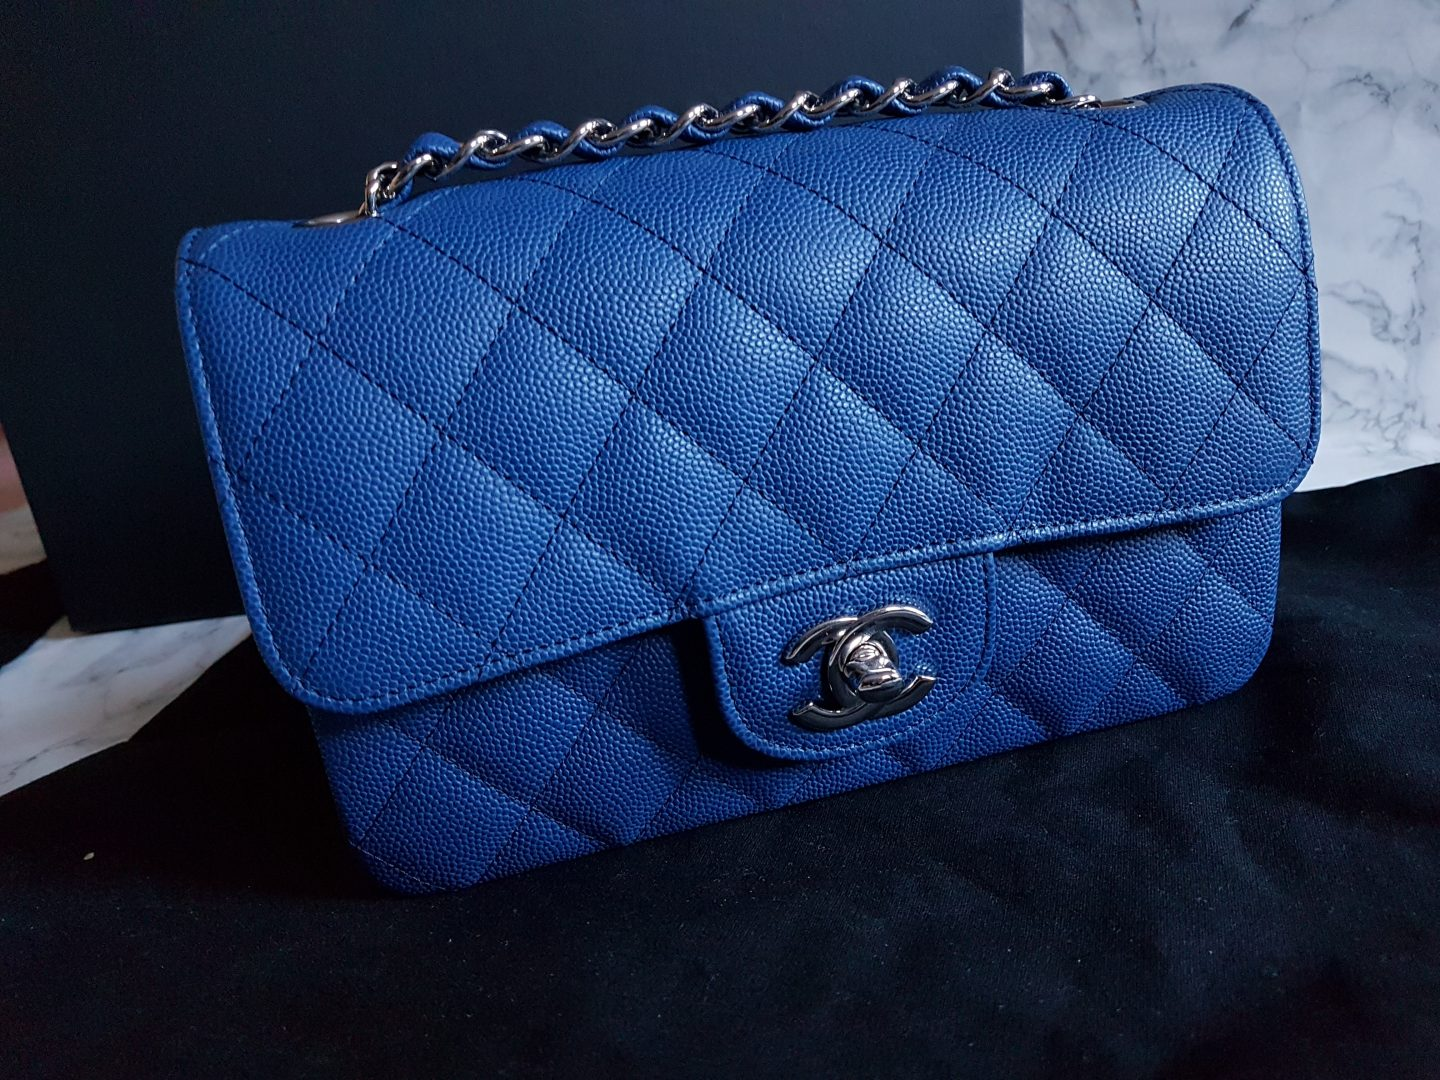 CHANEL Rectangle Mini Flap Bag Review + What Fits Inside